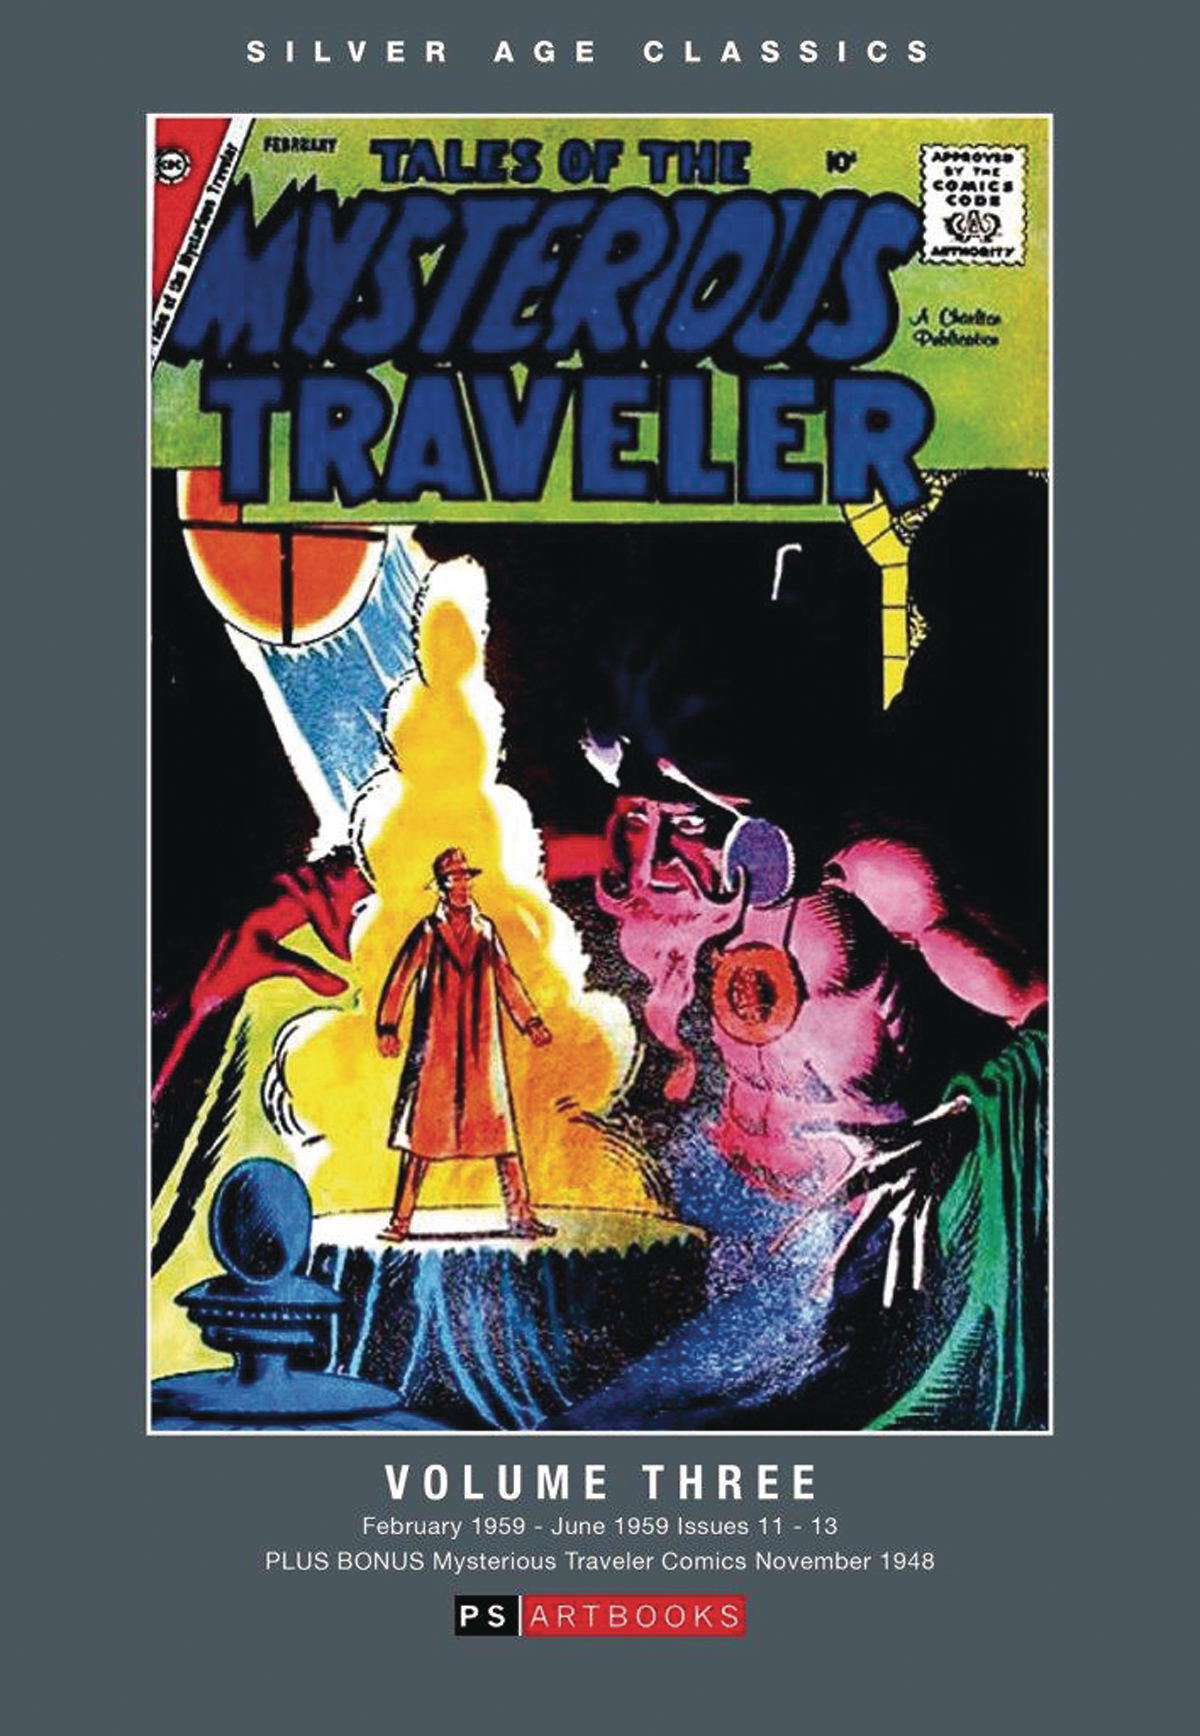 SILVER AGE CLASSICS TALES OF MYSTERIOUS TRAVELER HC VOL 03 (